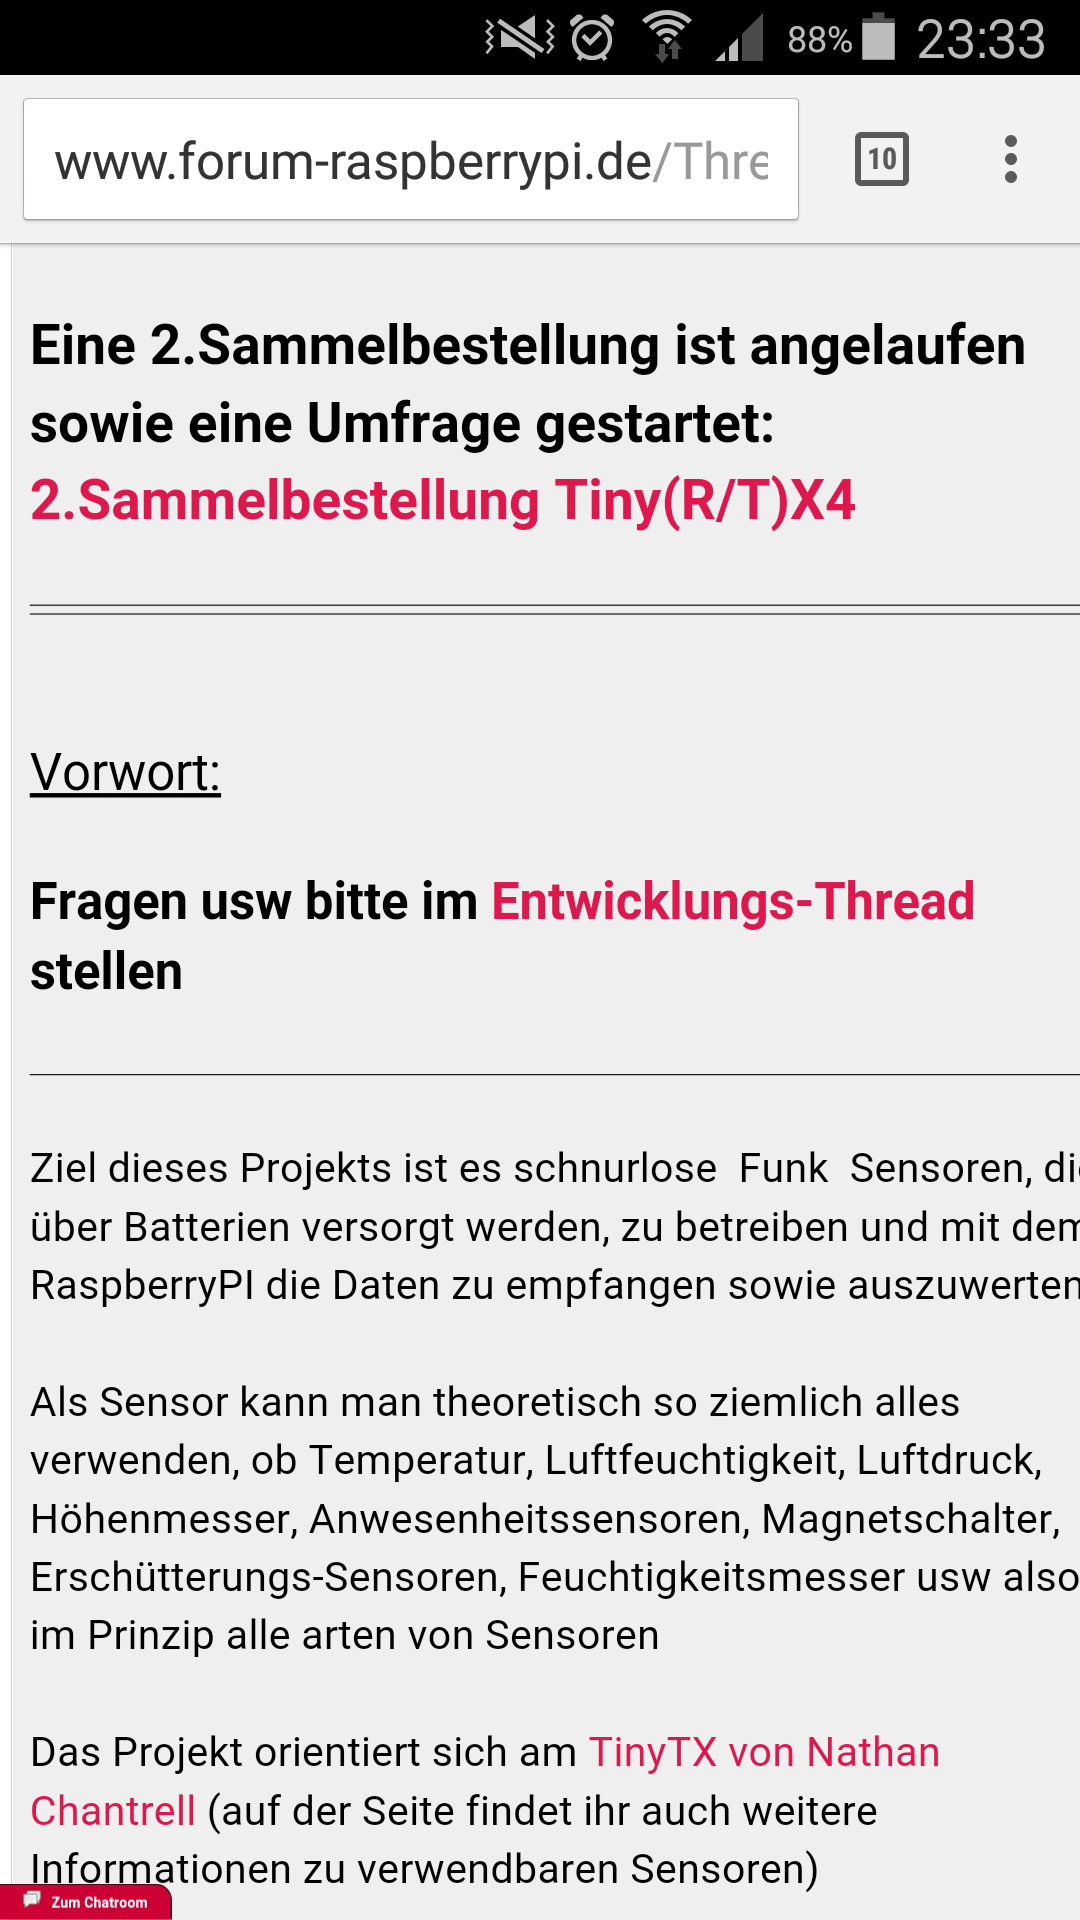 [Bild: screenshot_2015-04-09zaaz4.png]